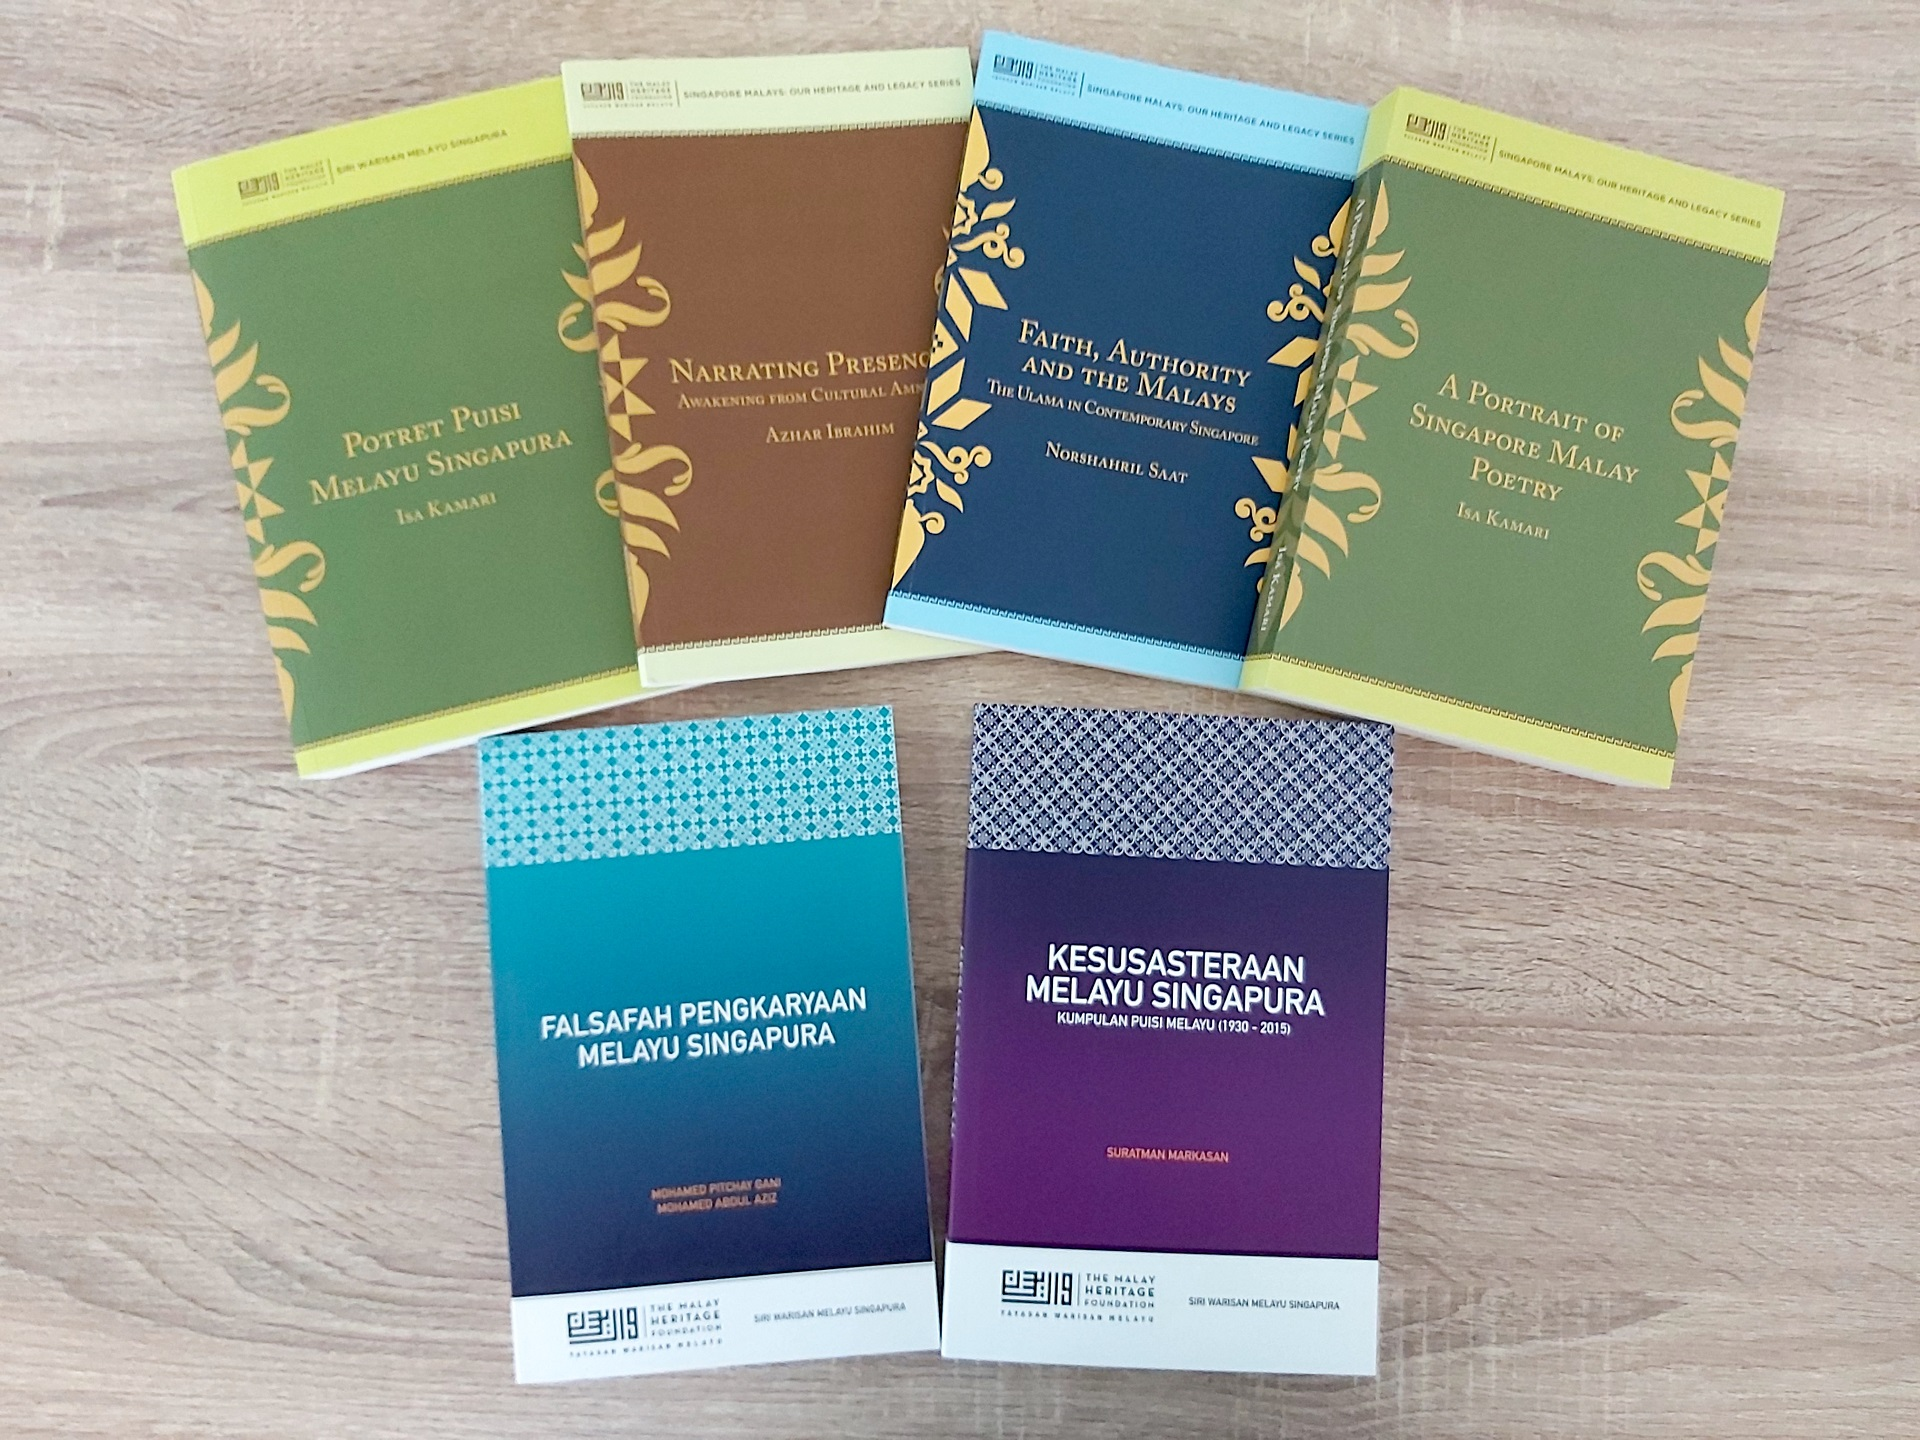 Singapore Malays_ Our Heritage and Legacy Series Book Covers